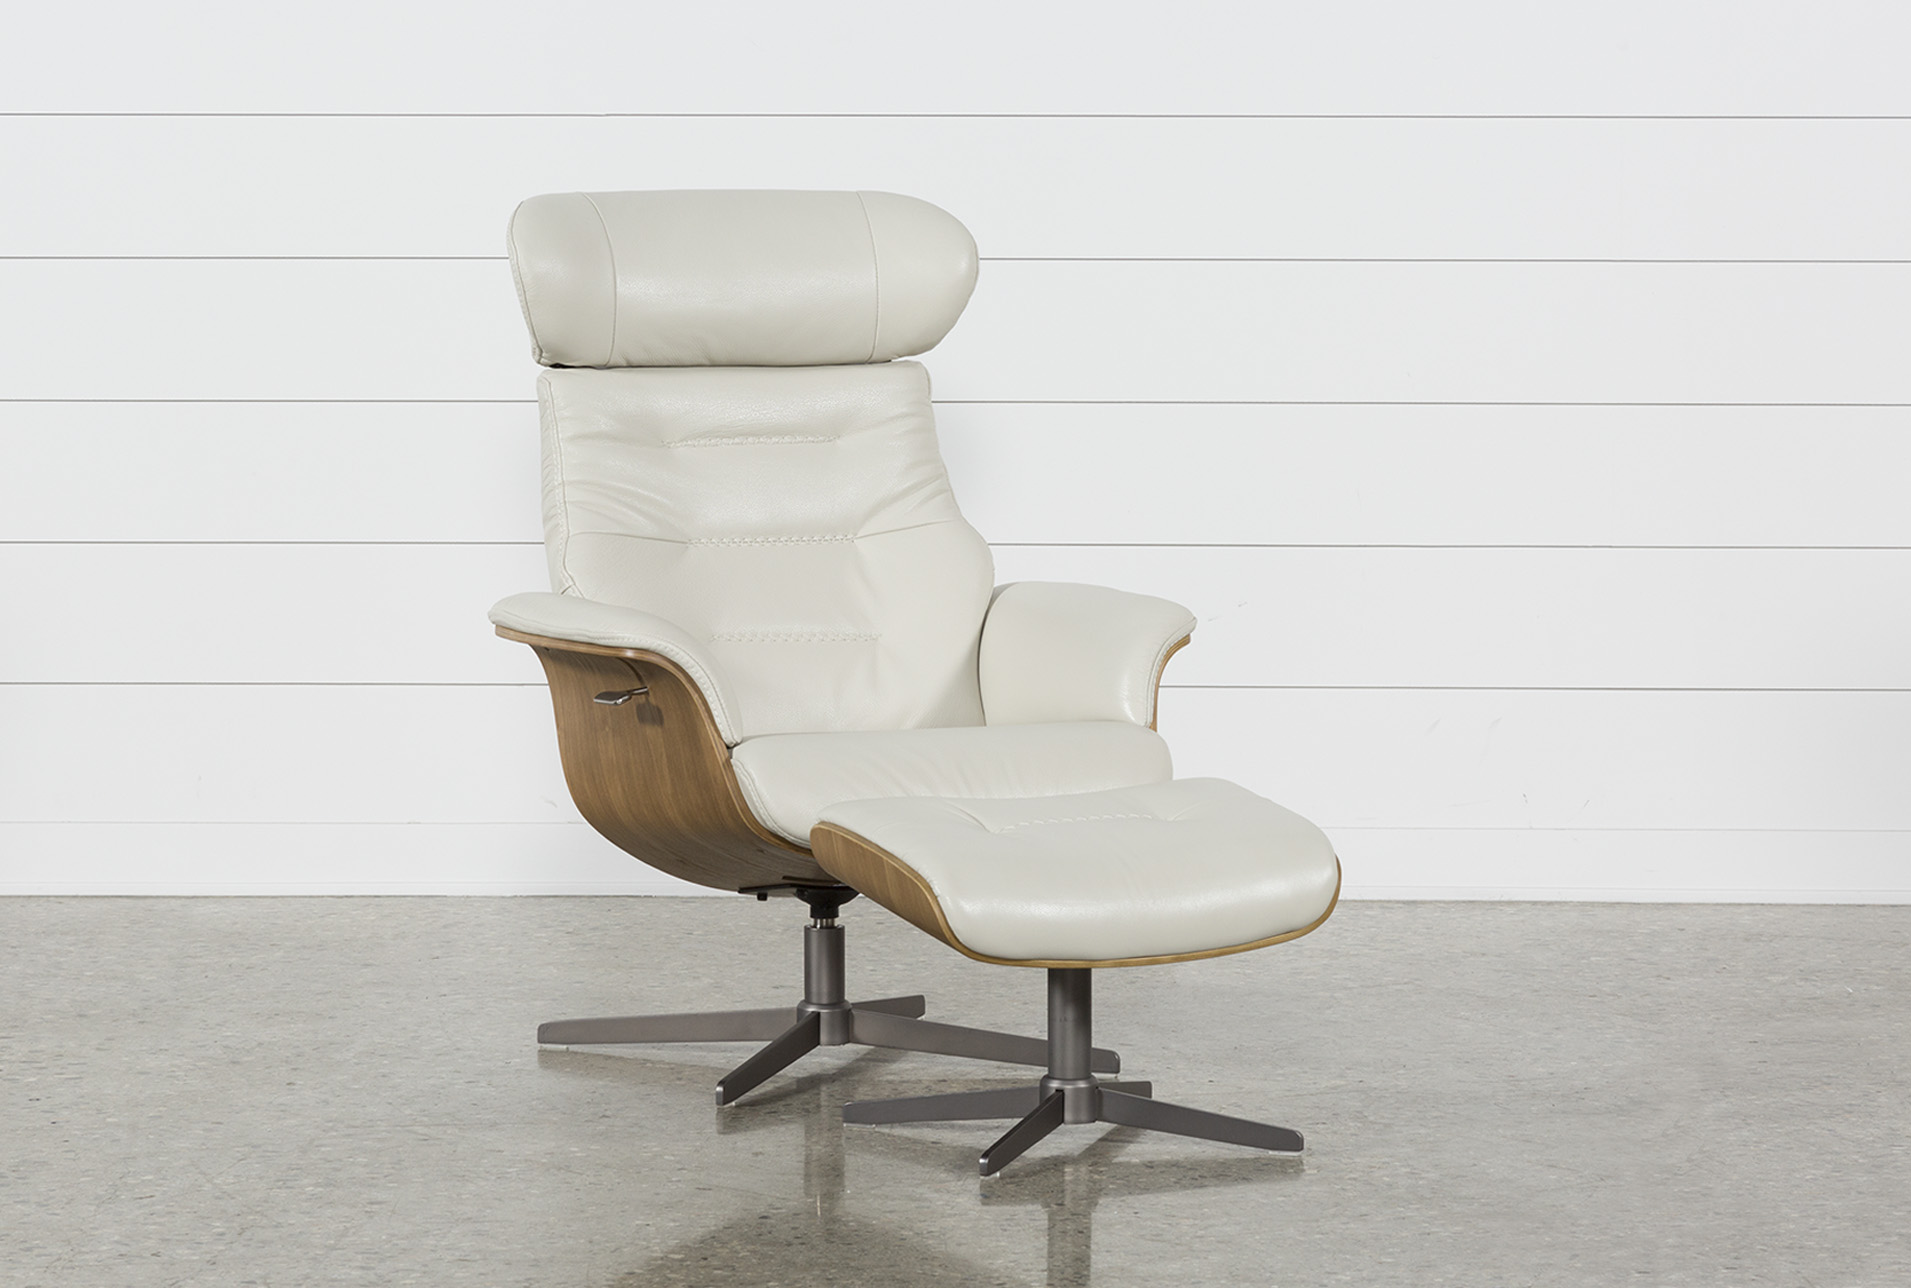 Charmant Amala Bone Leather Chair U0026amp; Ottoman (Qty: 1) Has Been Successfully Added  To Your Cart.